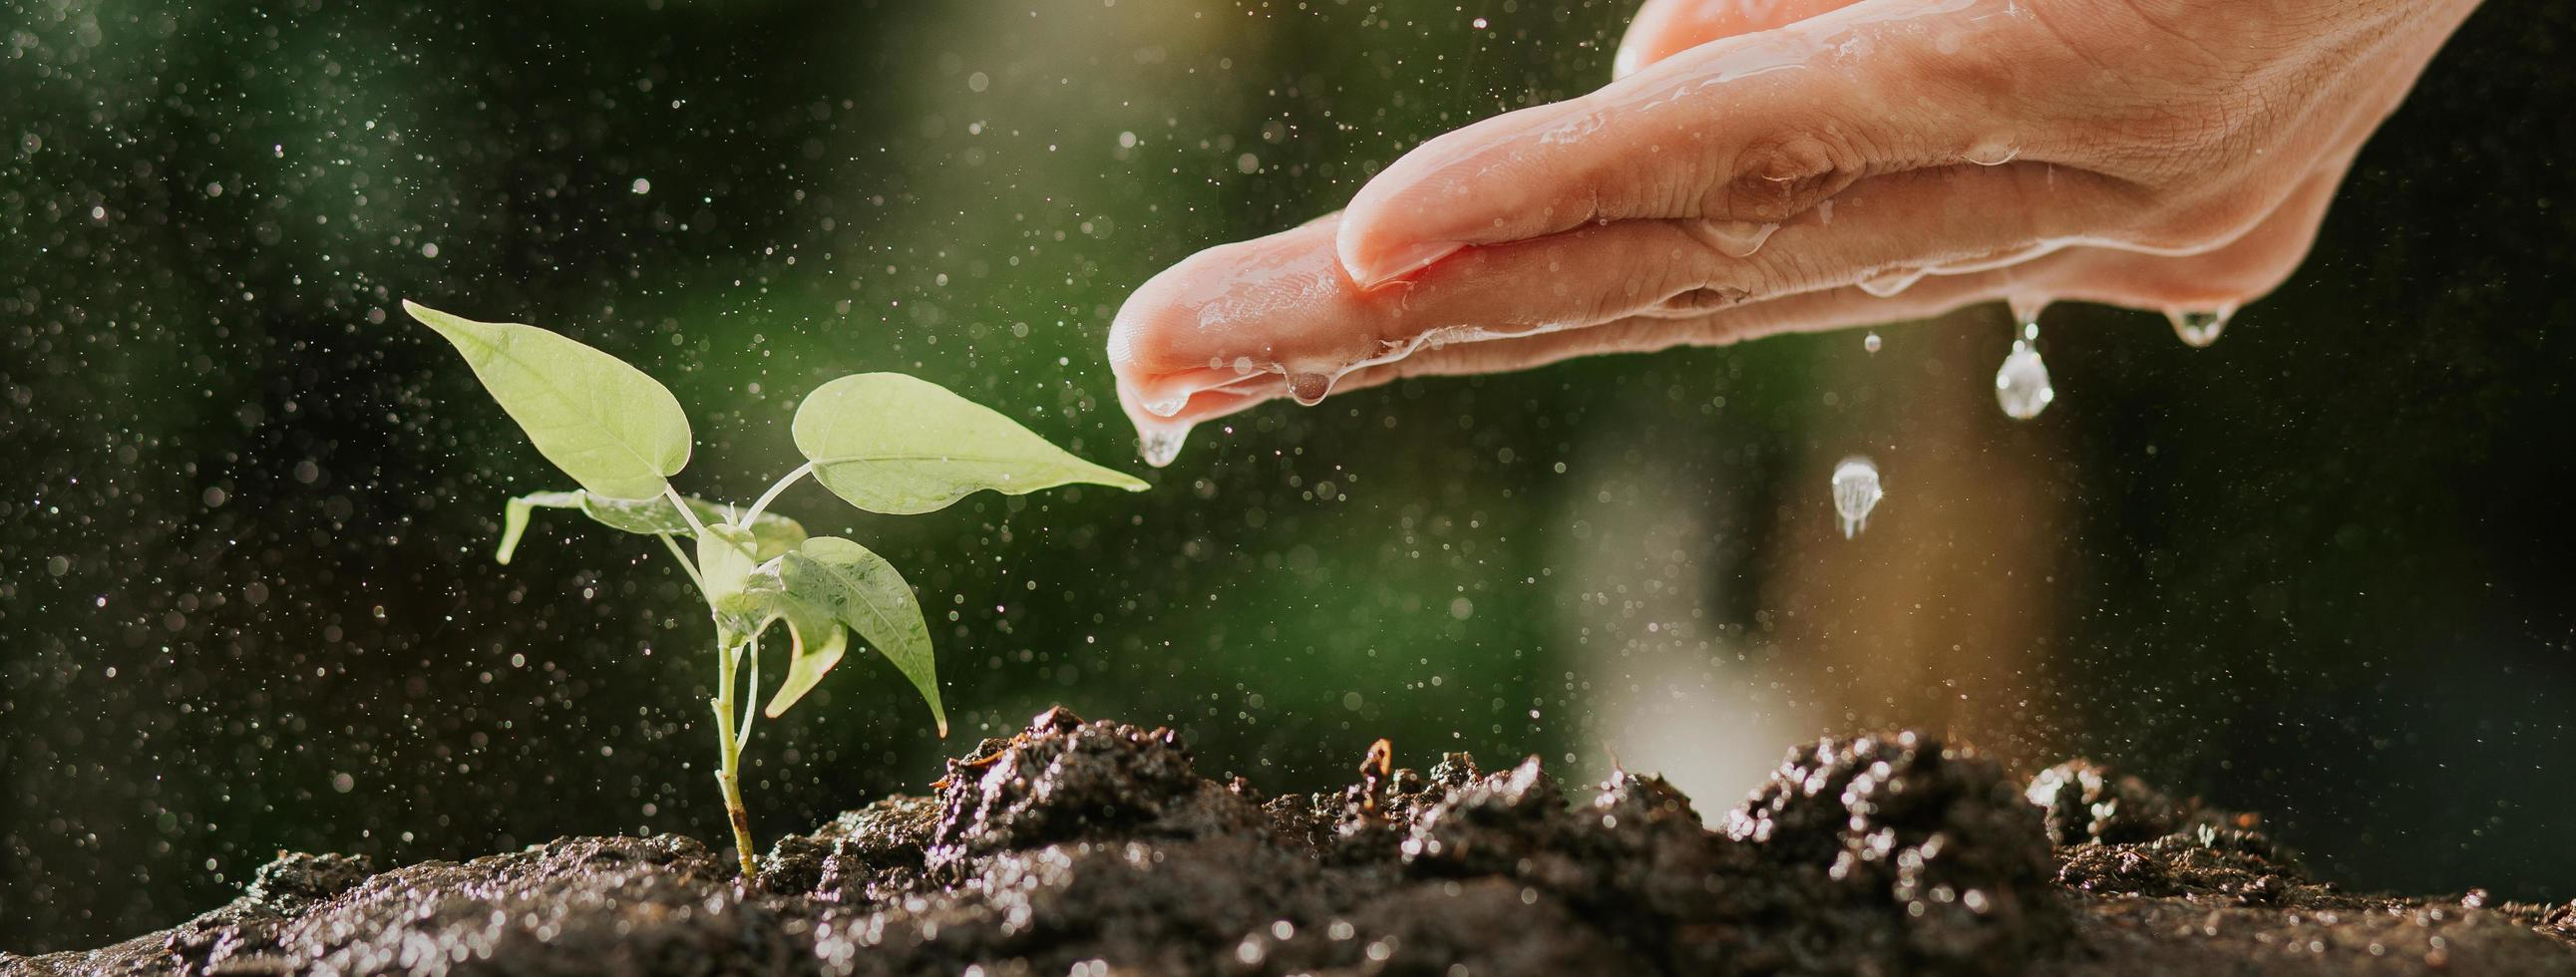 Plant watering banner photo